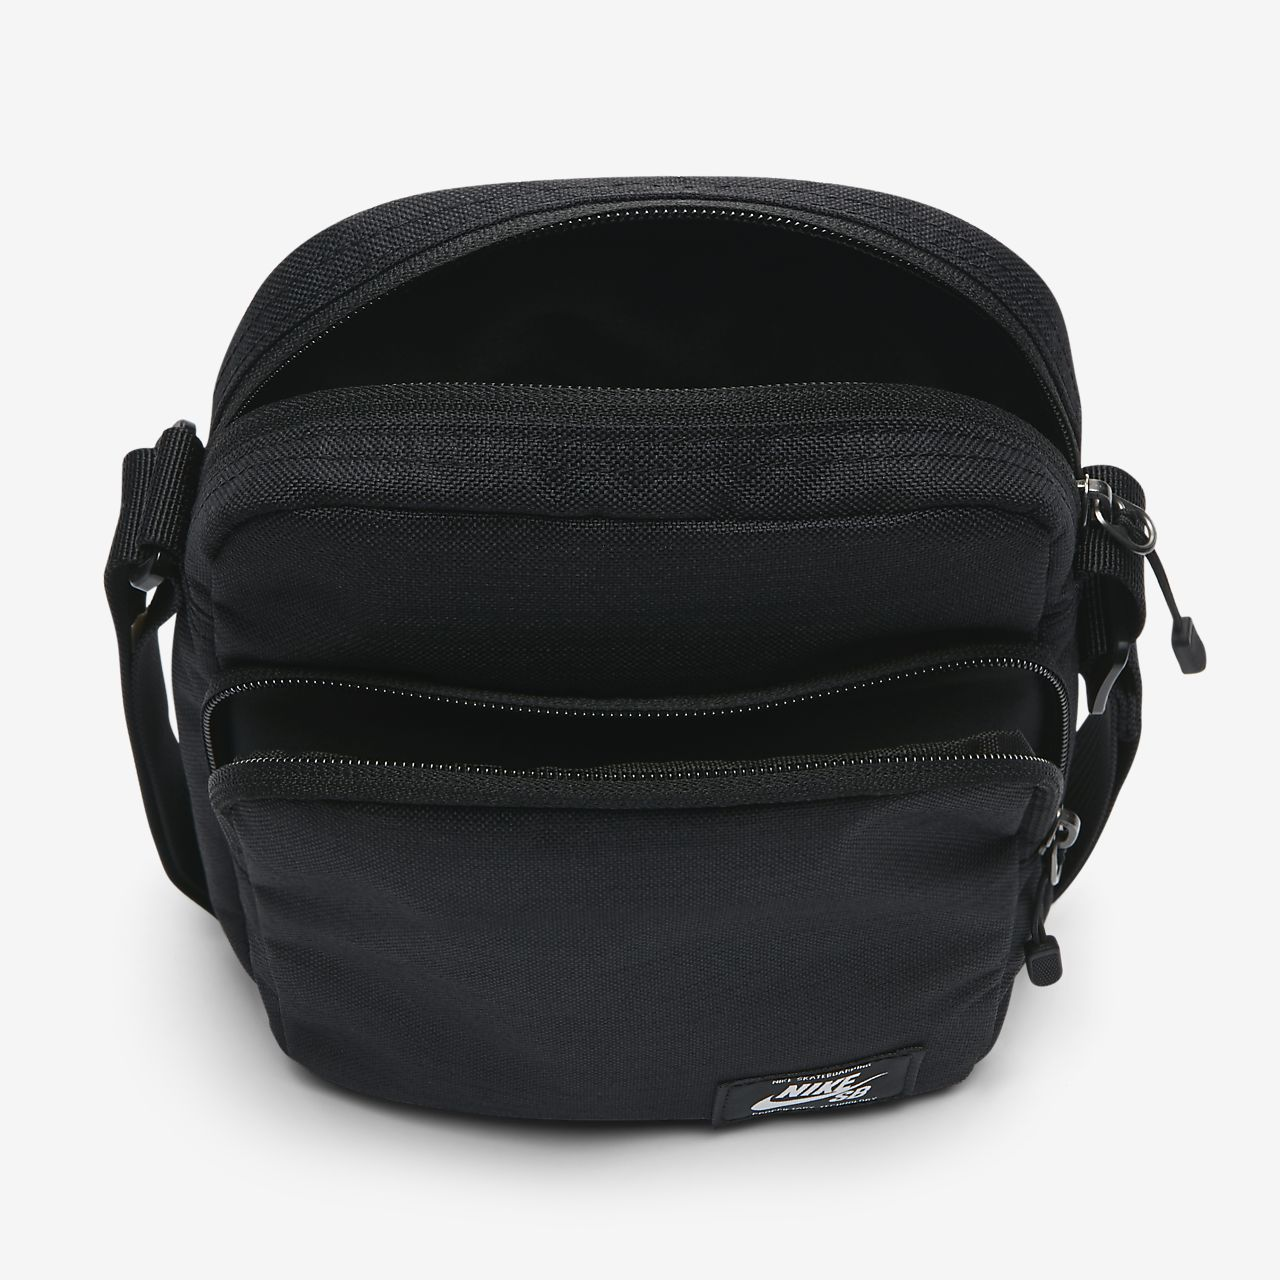 0b344bebafe76 Nike SB Heritage Small Items Bag. Nike.com NZ